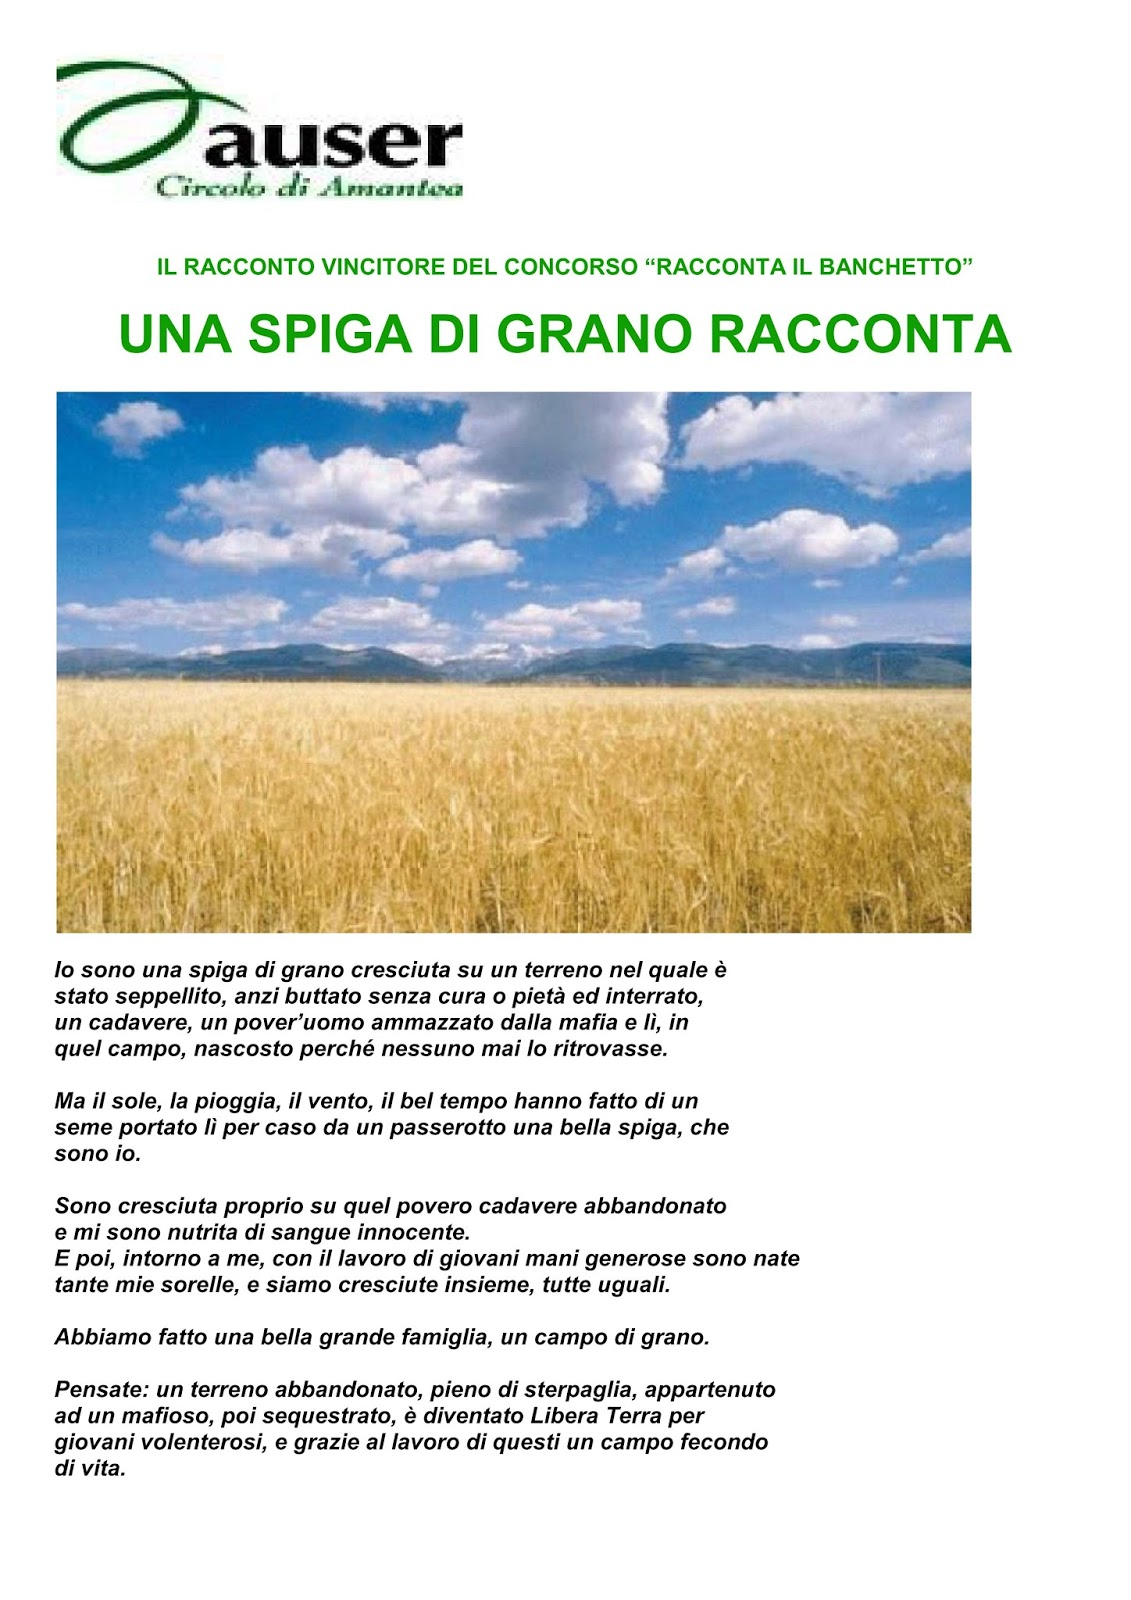 Thumbnail image for /public/upload/2013/8/635125117859426039_Locandina Pedatella.jpg